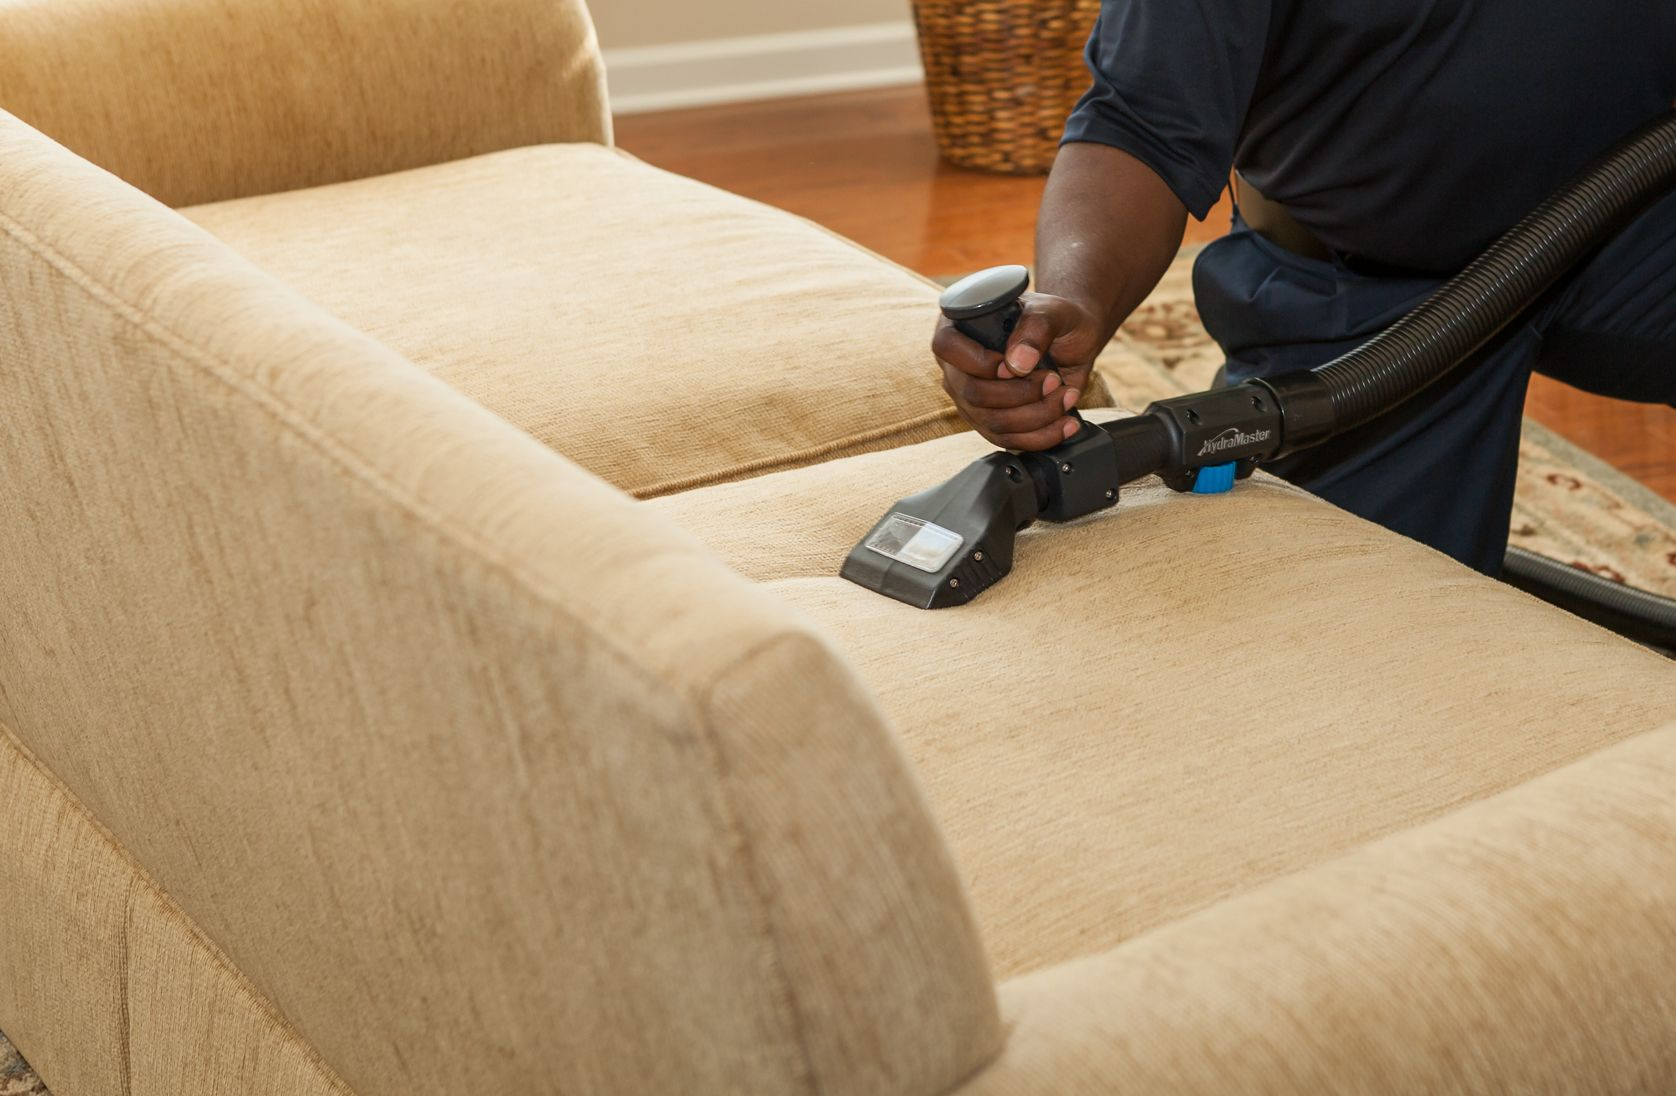 Furniture Upholstery Cleaning Santa Monica Get Rid Of Fleas Cleaning Upholstery How To Clean Carpet Domestic Cleaning